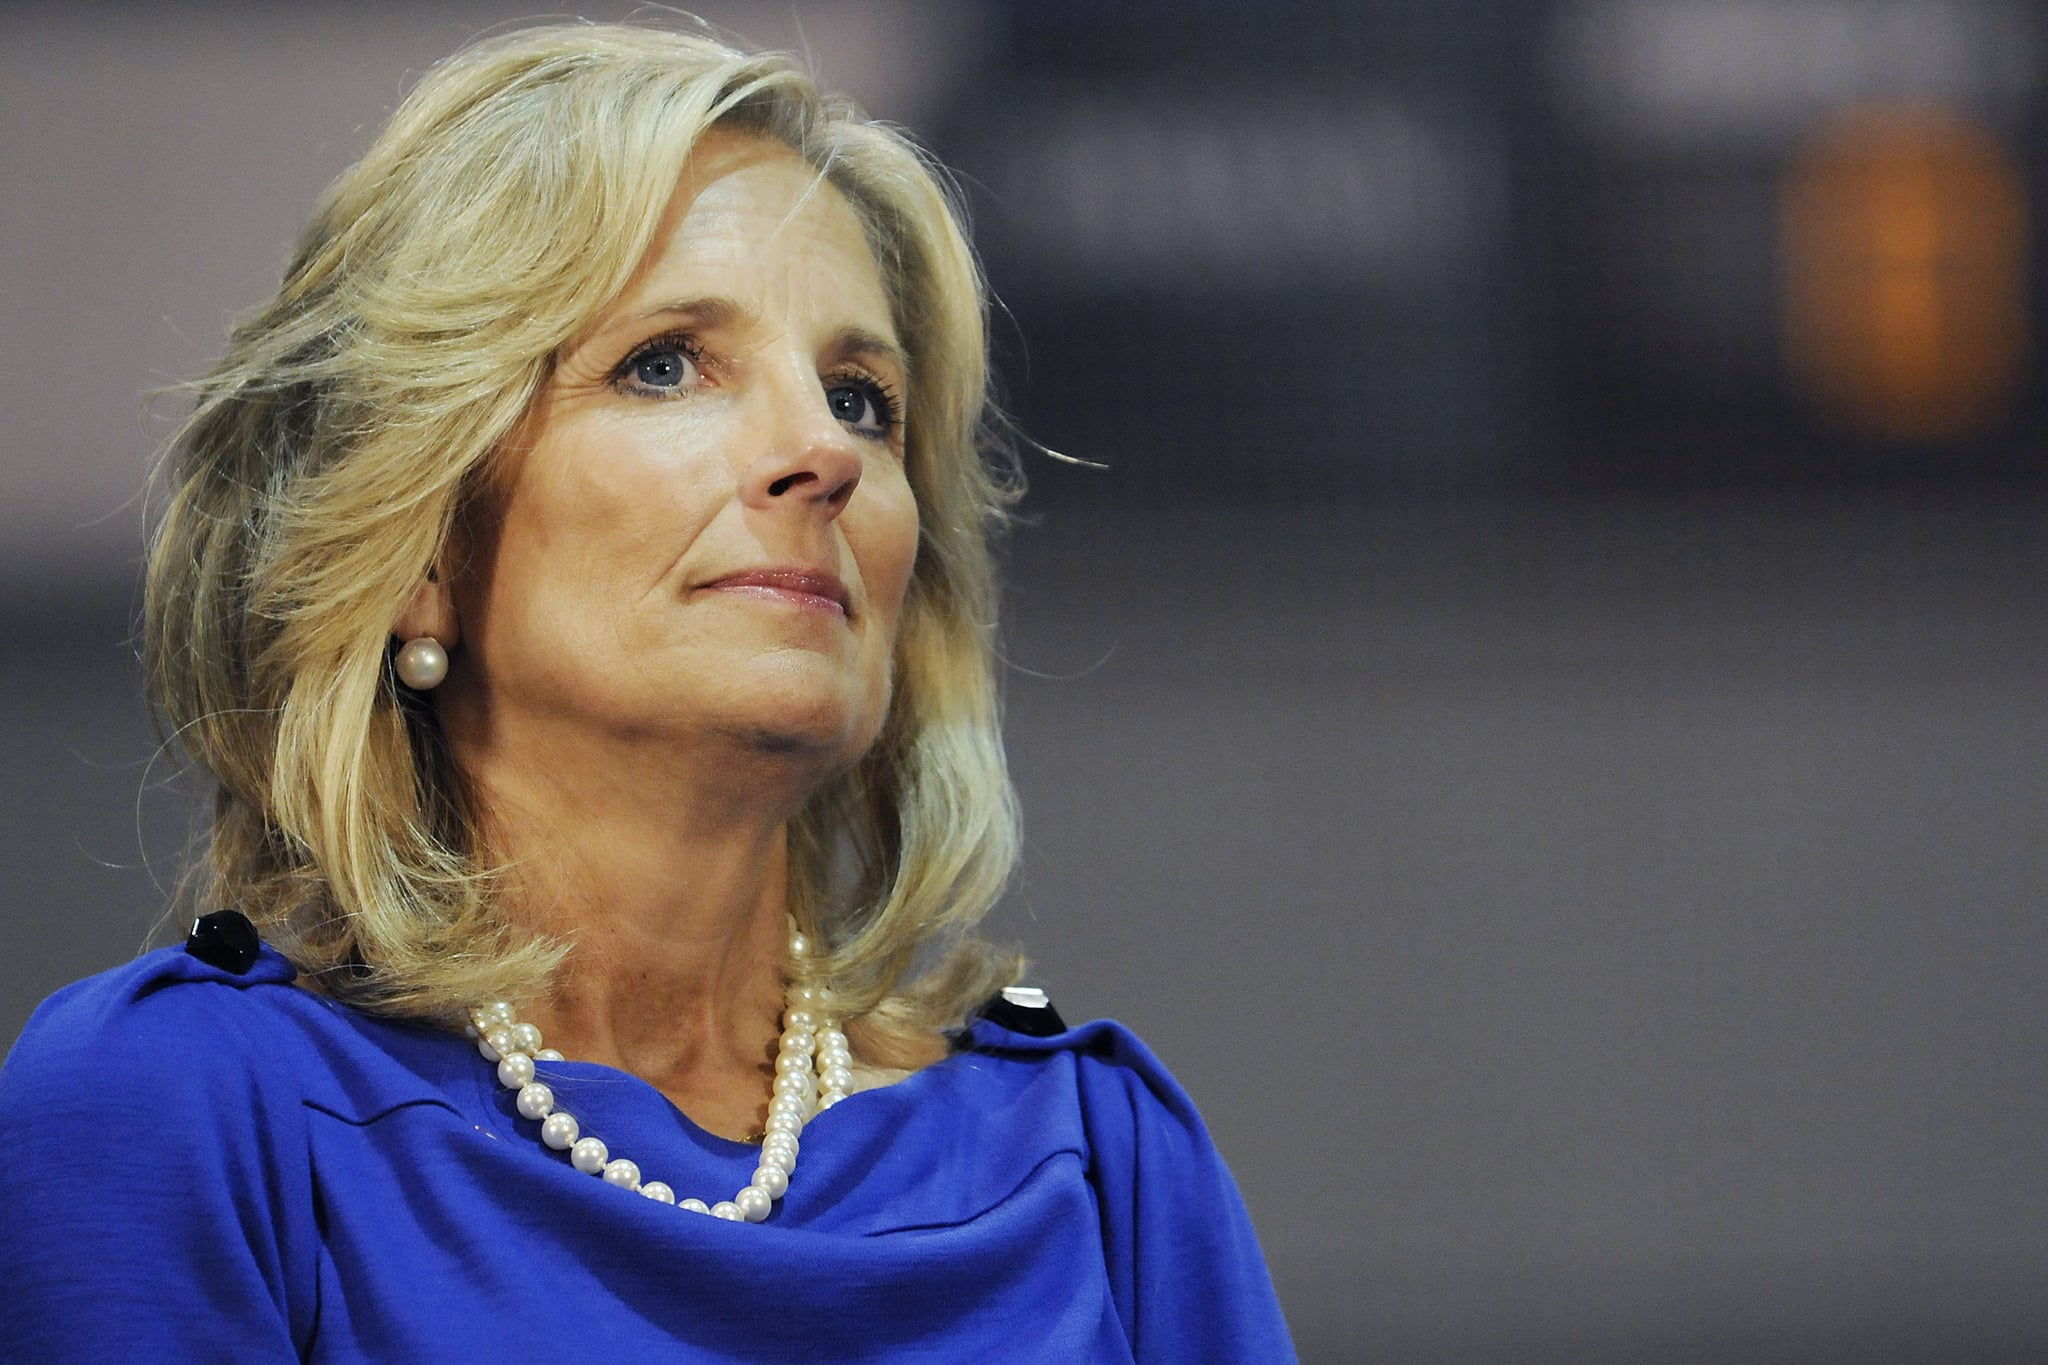 SCRANTON, PA - OCTOBER 12:  Dr. Jill Biden listens in at a rally in support of Democratic presidential nomineee U.S. Sen. Barack Obama (D-IL)October 12, 2008 in Scranton, Pennsylvania. (Photo by Jeff Fusco/Getty Images)